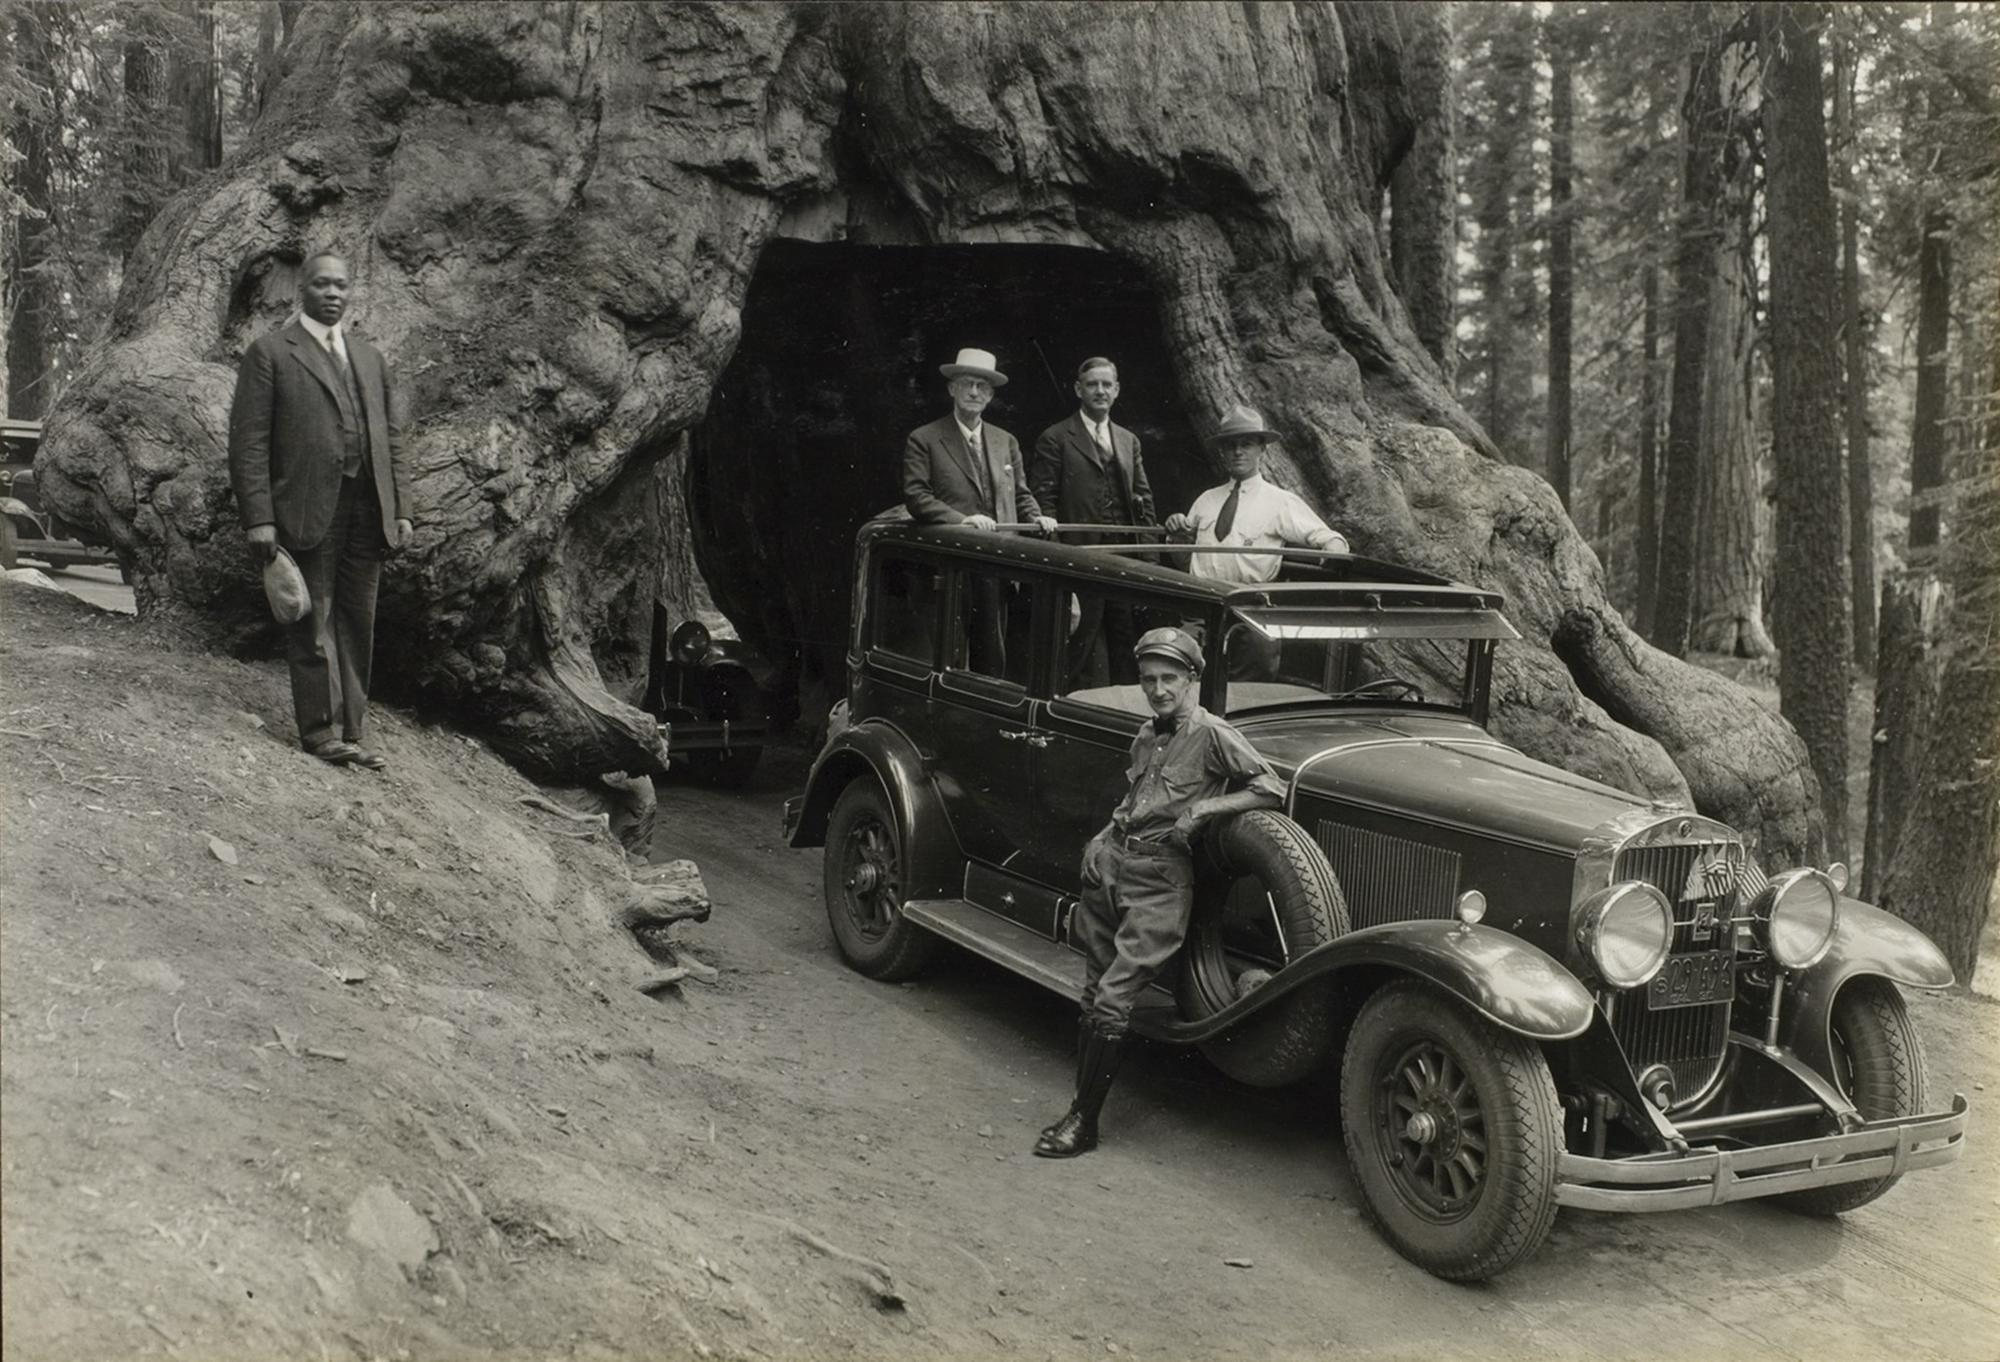 Audley D. Stewart, George Eastman and companions ridiing through the Wawona Tree in Yosemite National Park, Pacific coast trip, 1930